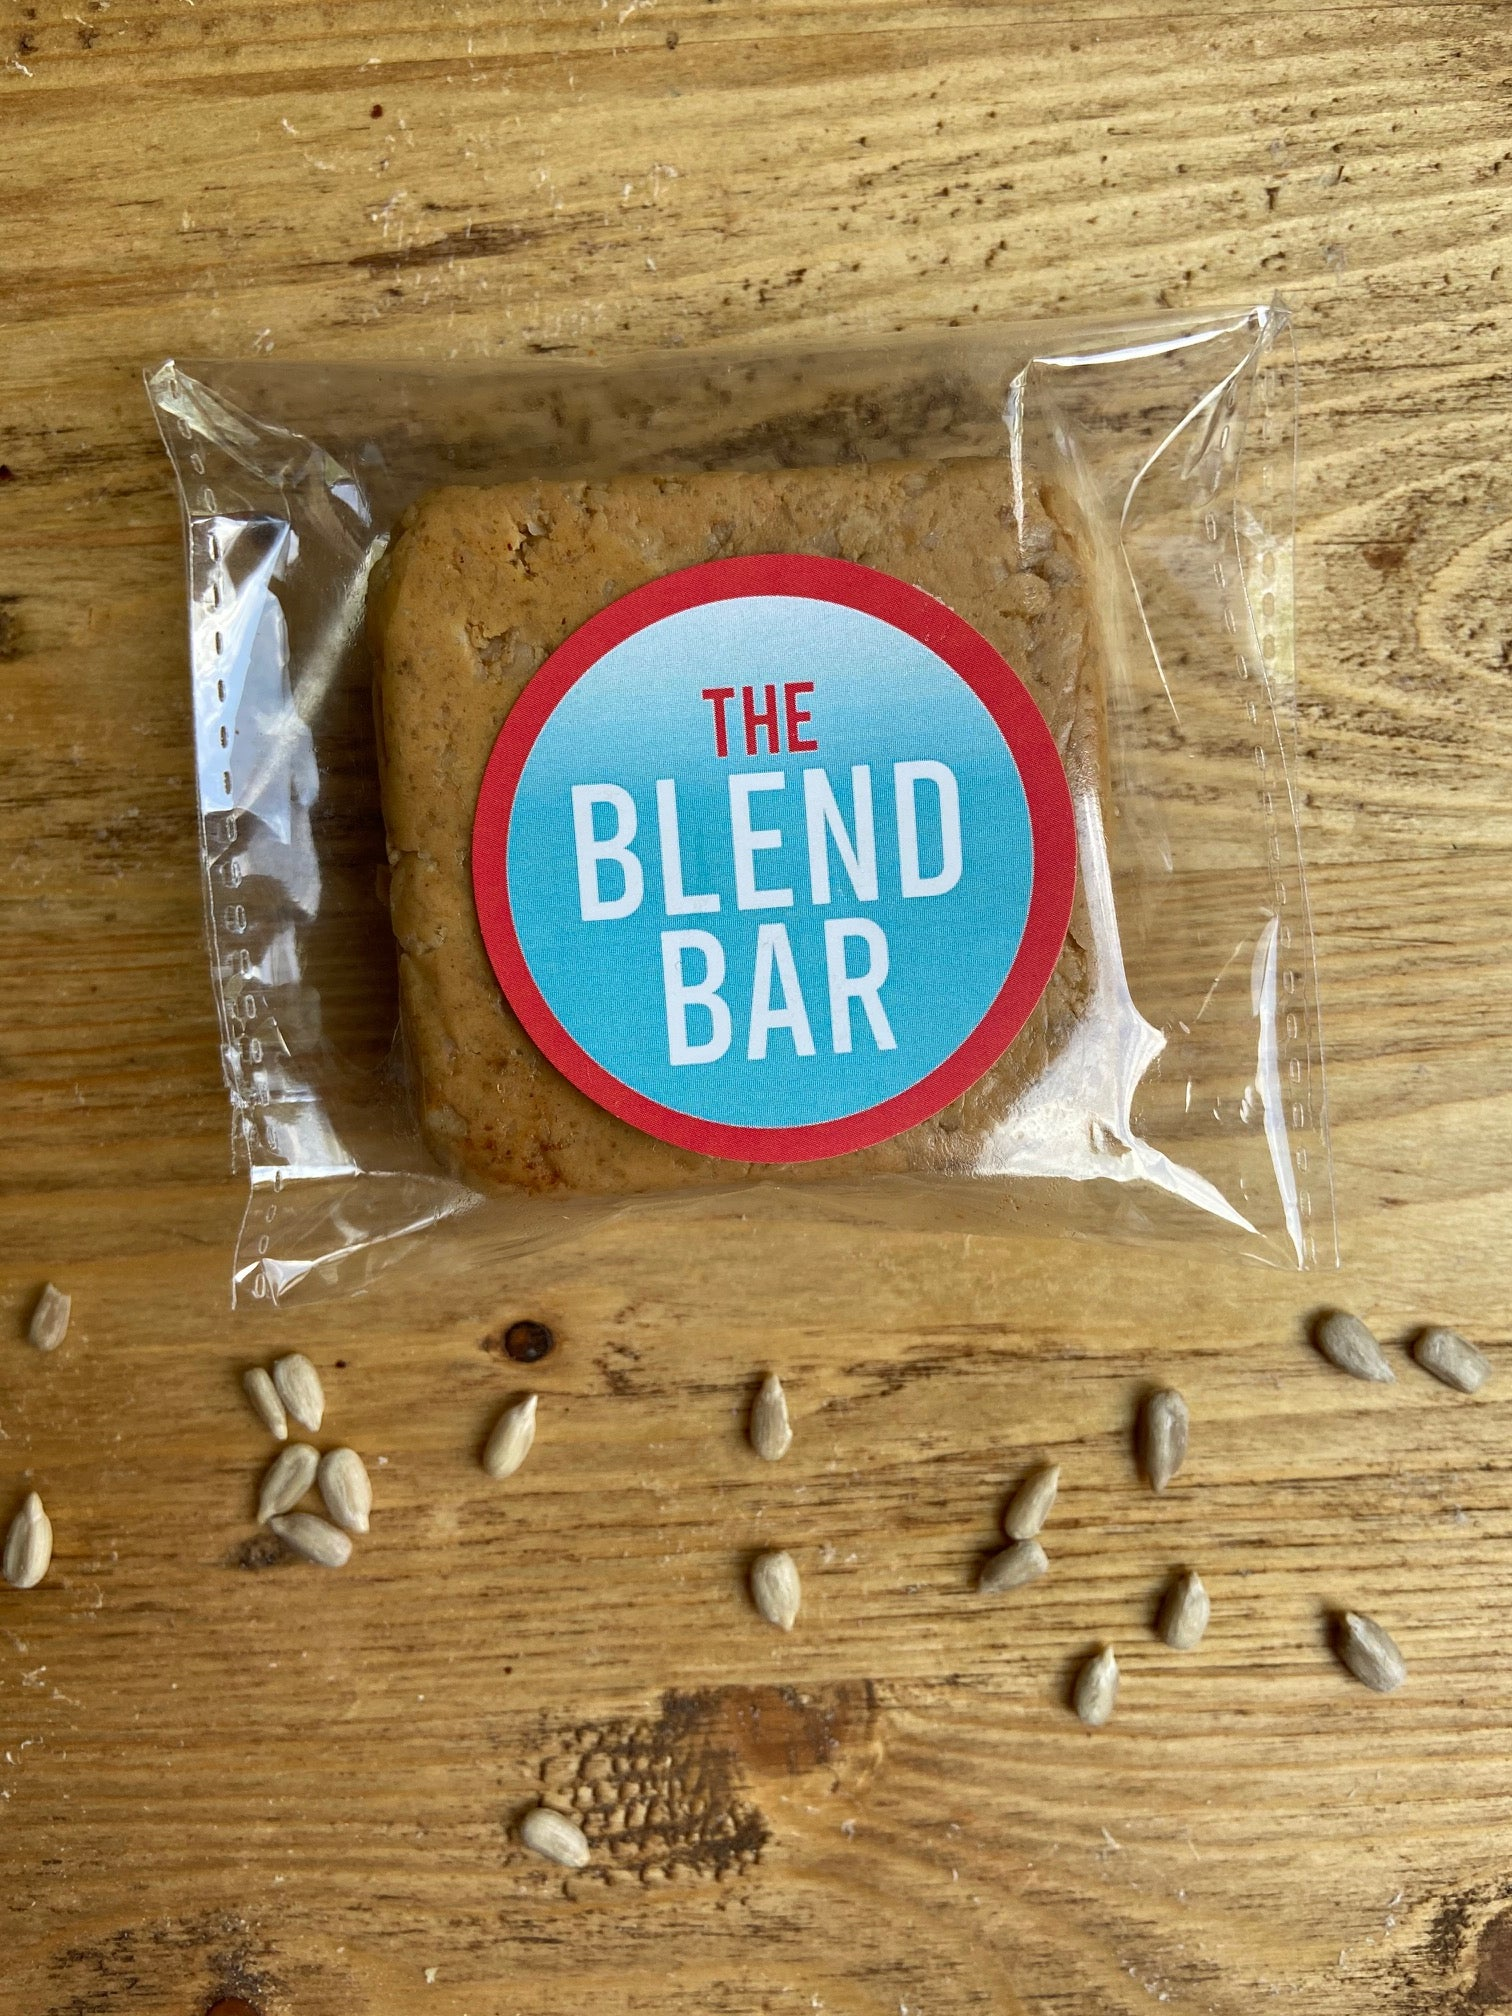 The Blend Bar Variety 8-Pack!